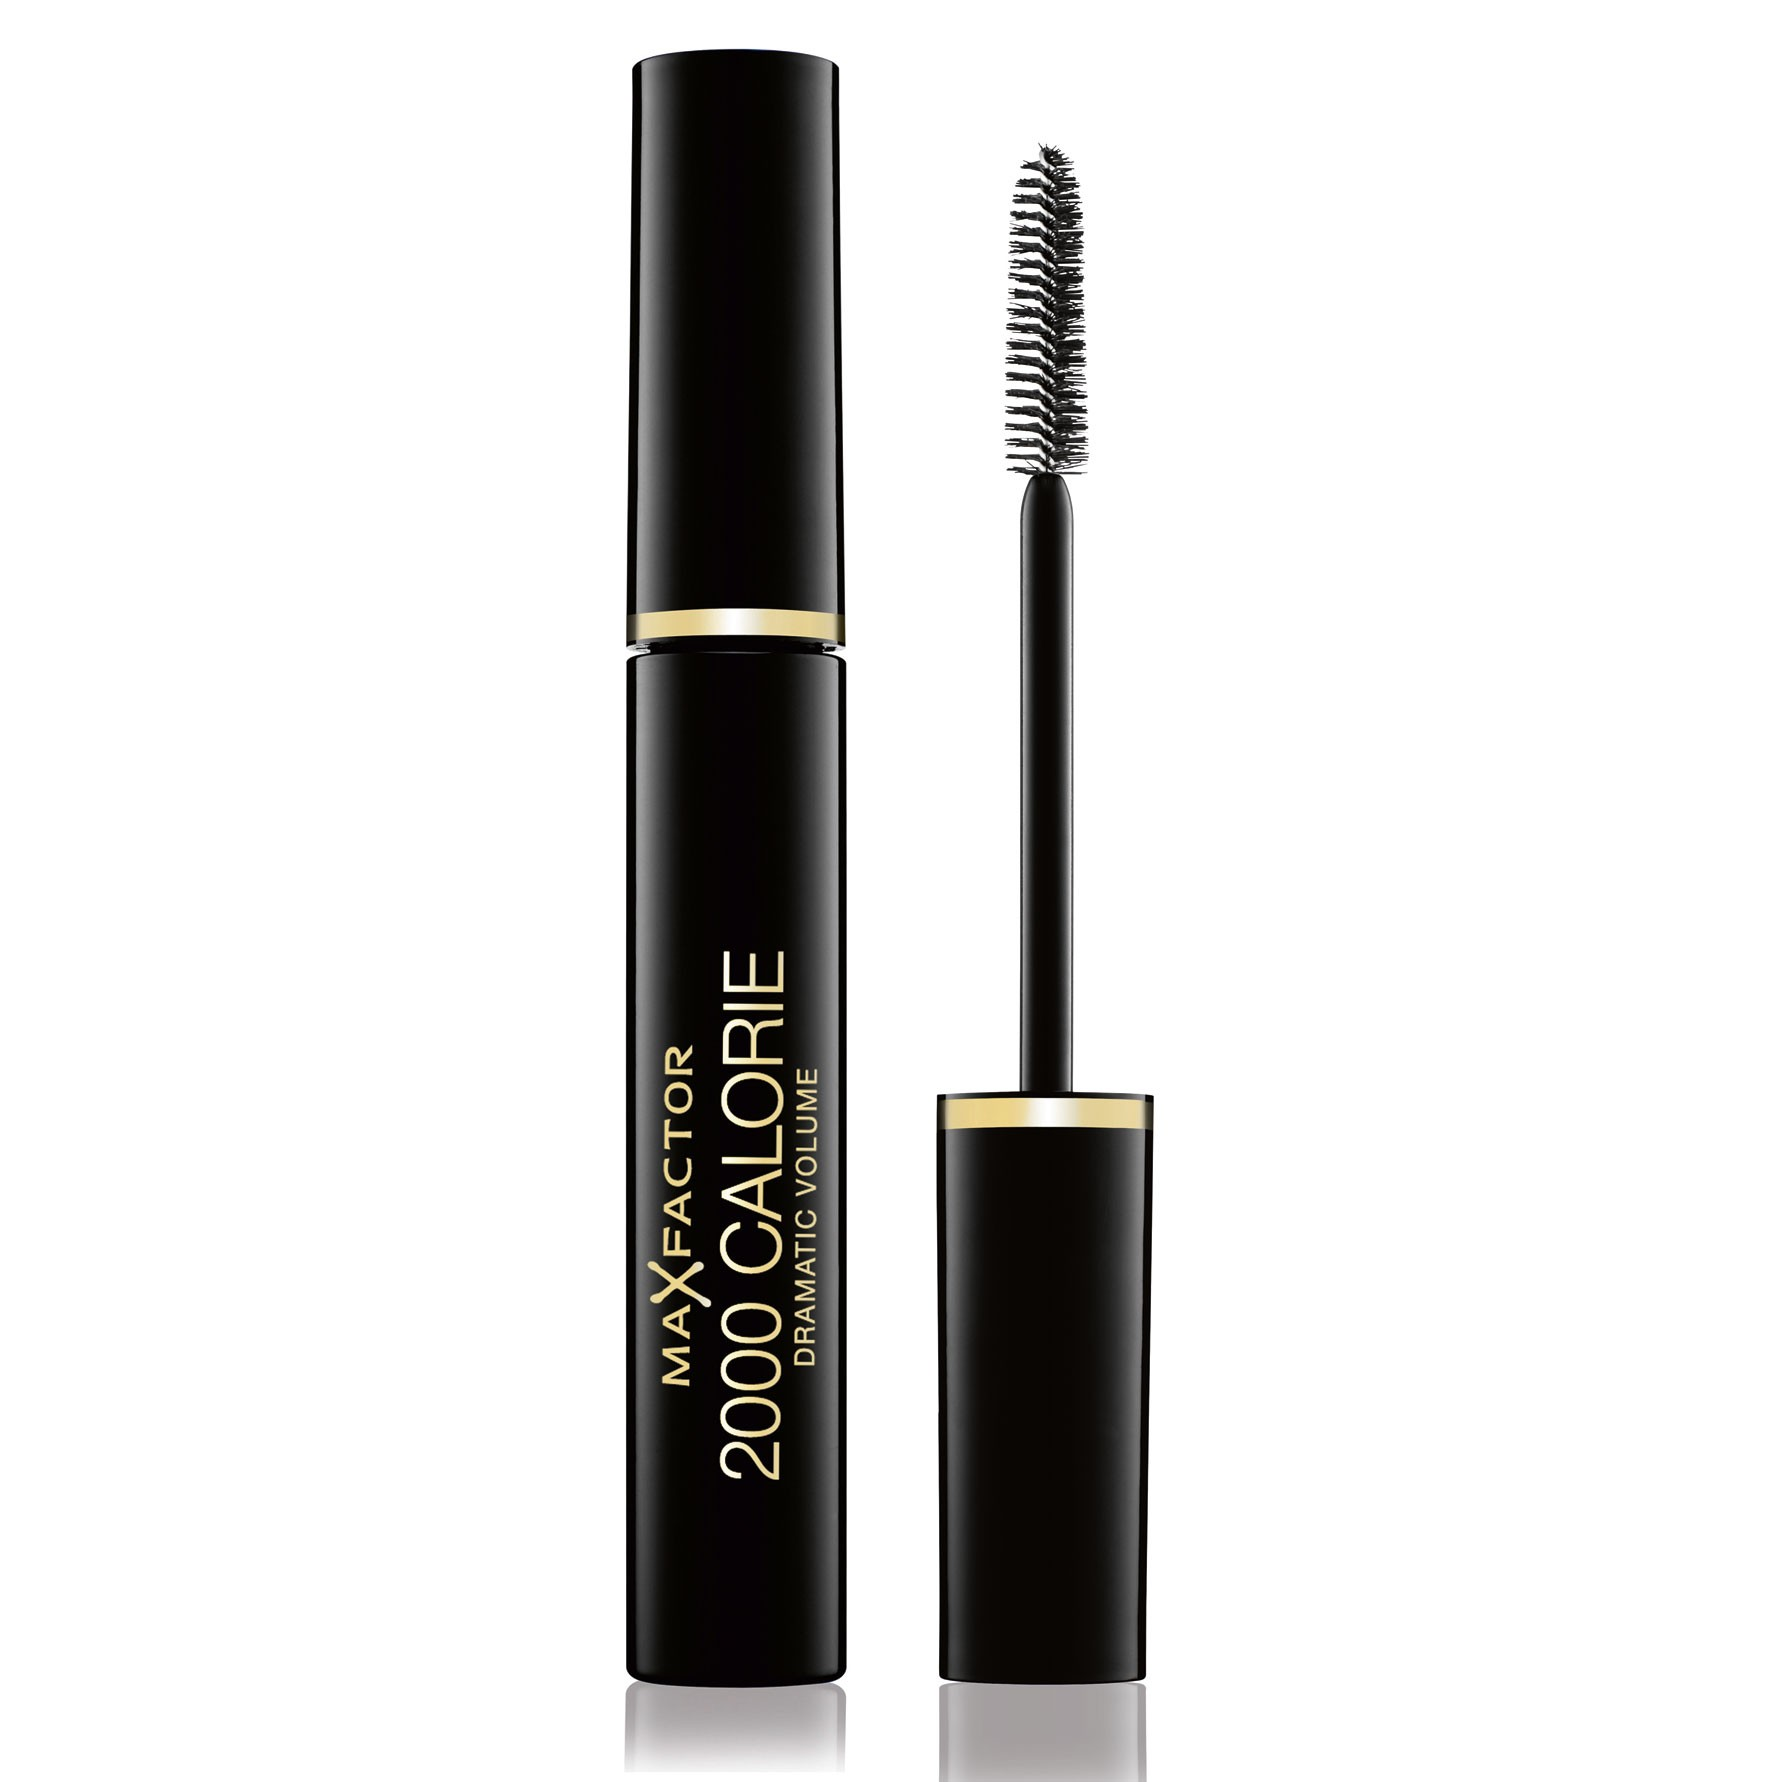 max factor mascara 2000 calorie. Black Bedroom Furniture Sets. Home Design Ideas